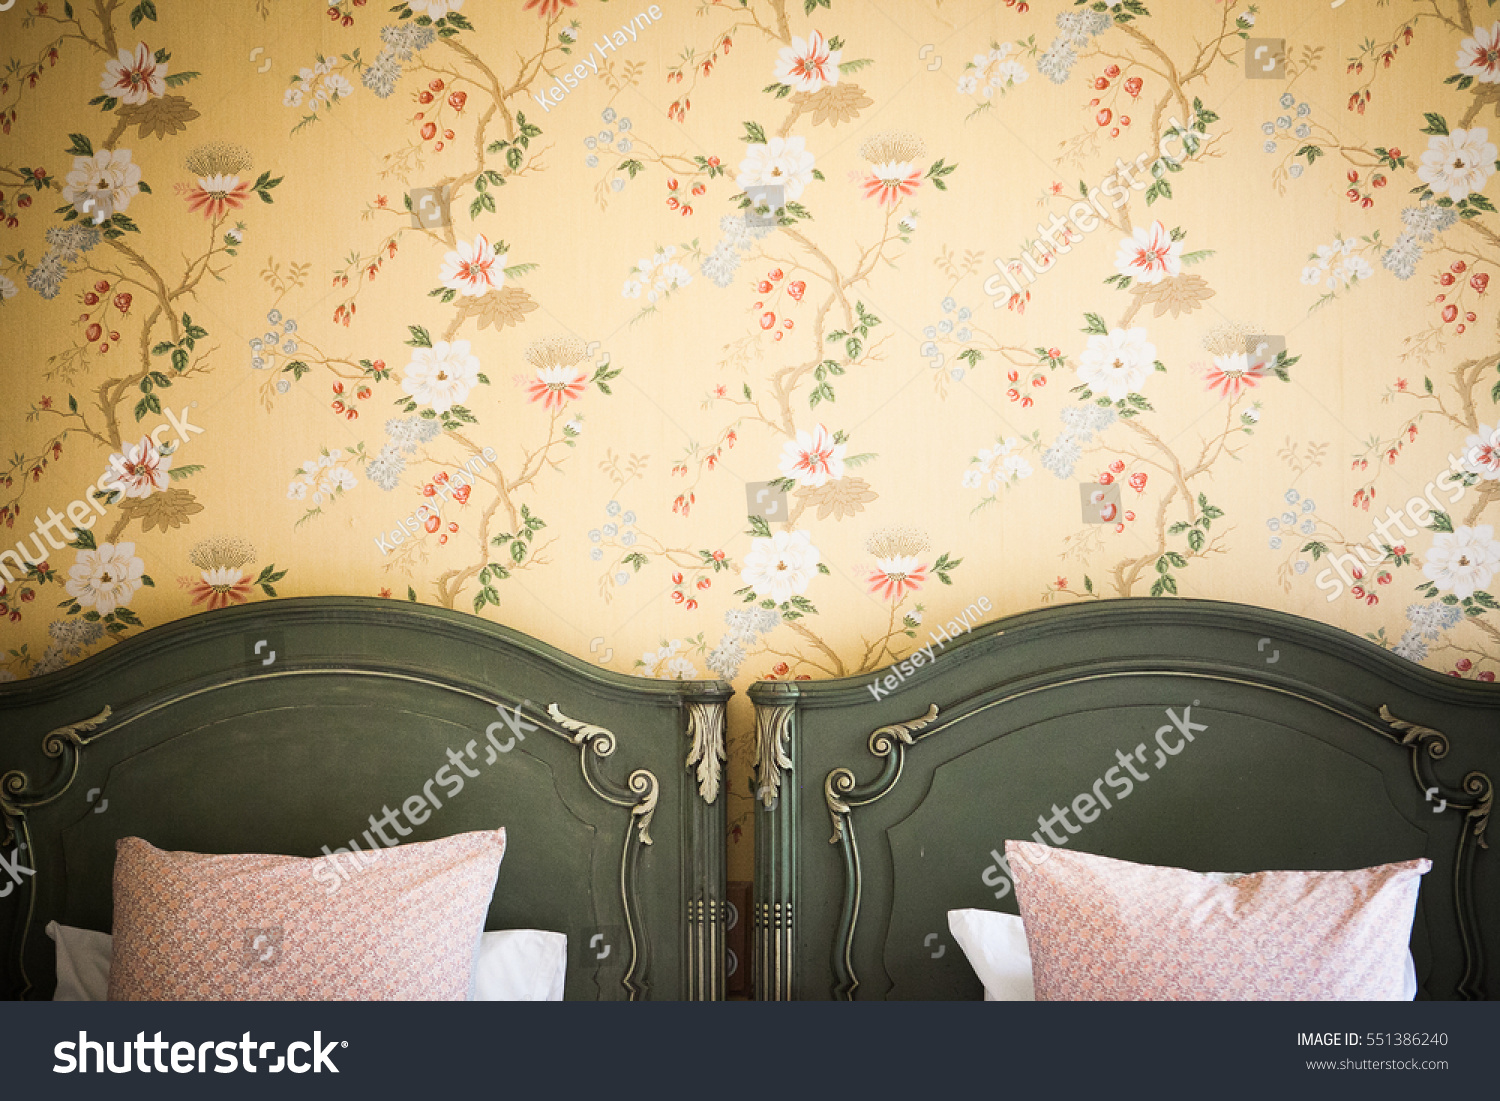 Antique yellow floral french wall paper with green wooden headboards of single beds